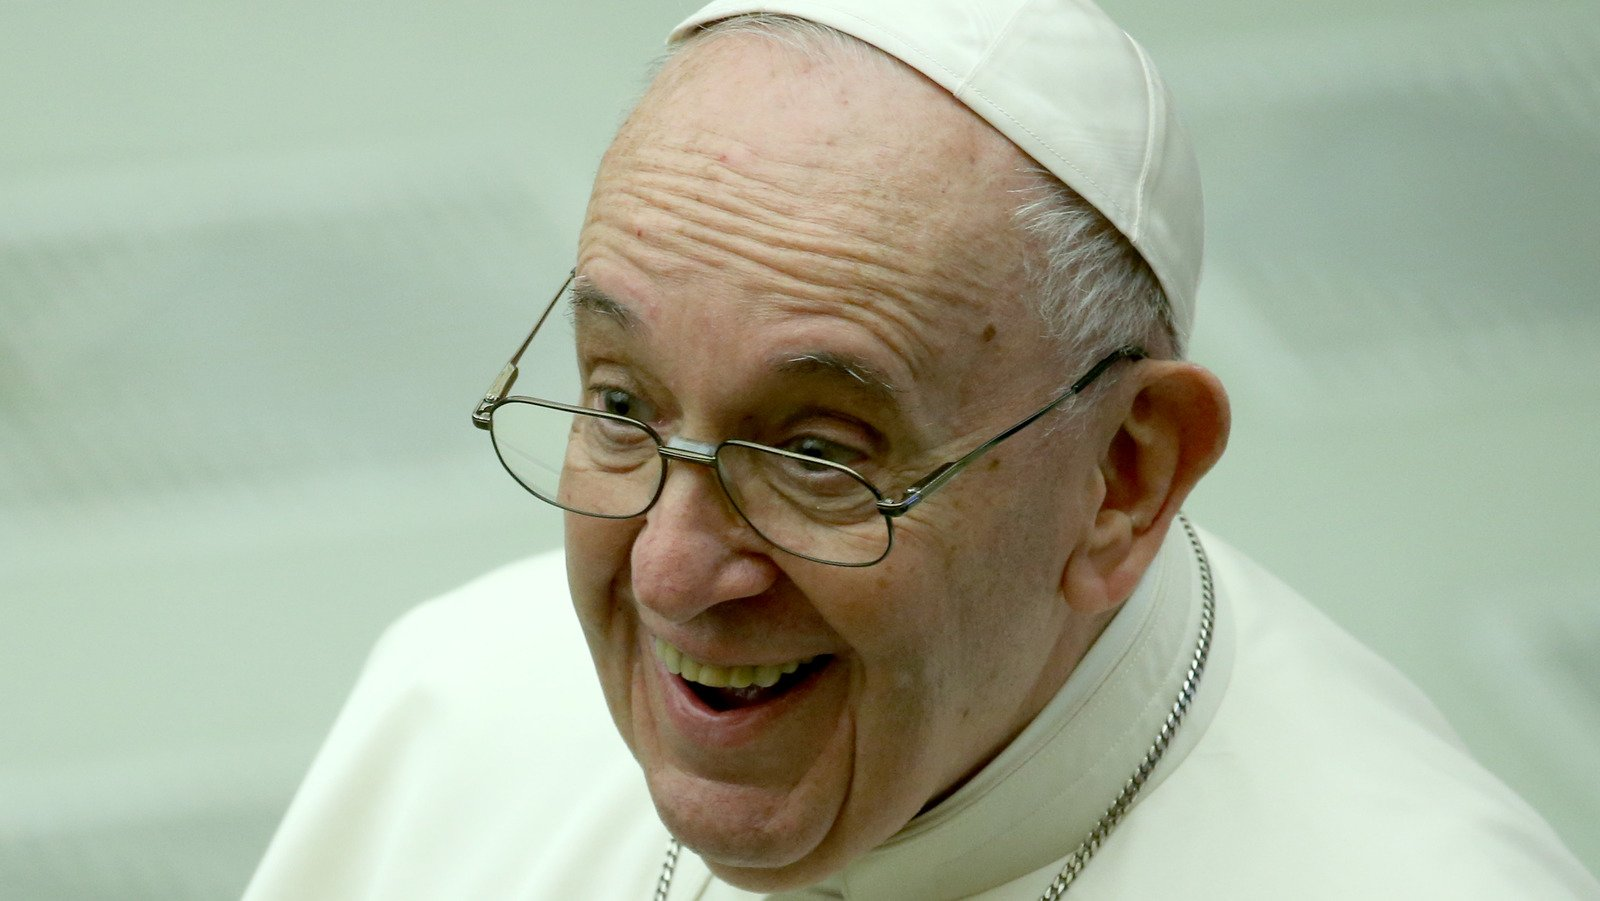 The Real Reason The Pope Chose Francis As His Papal Name